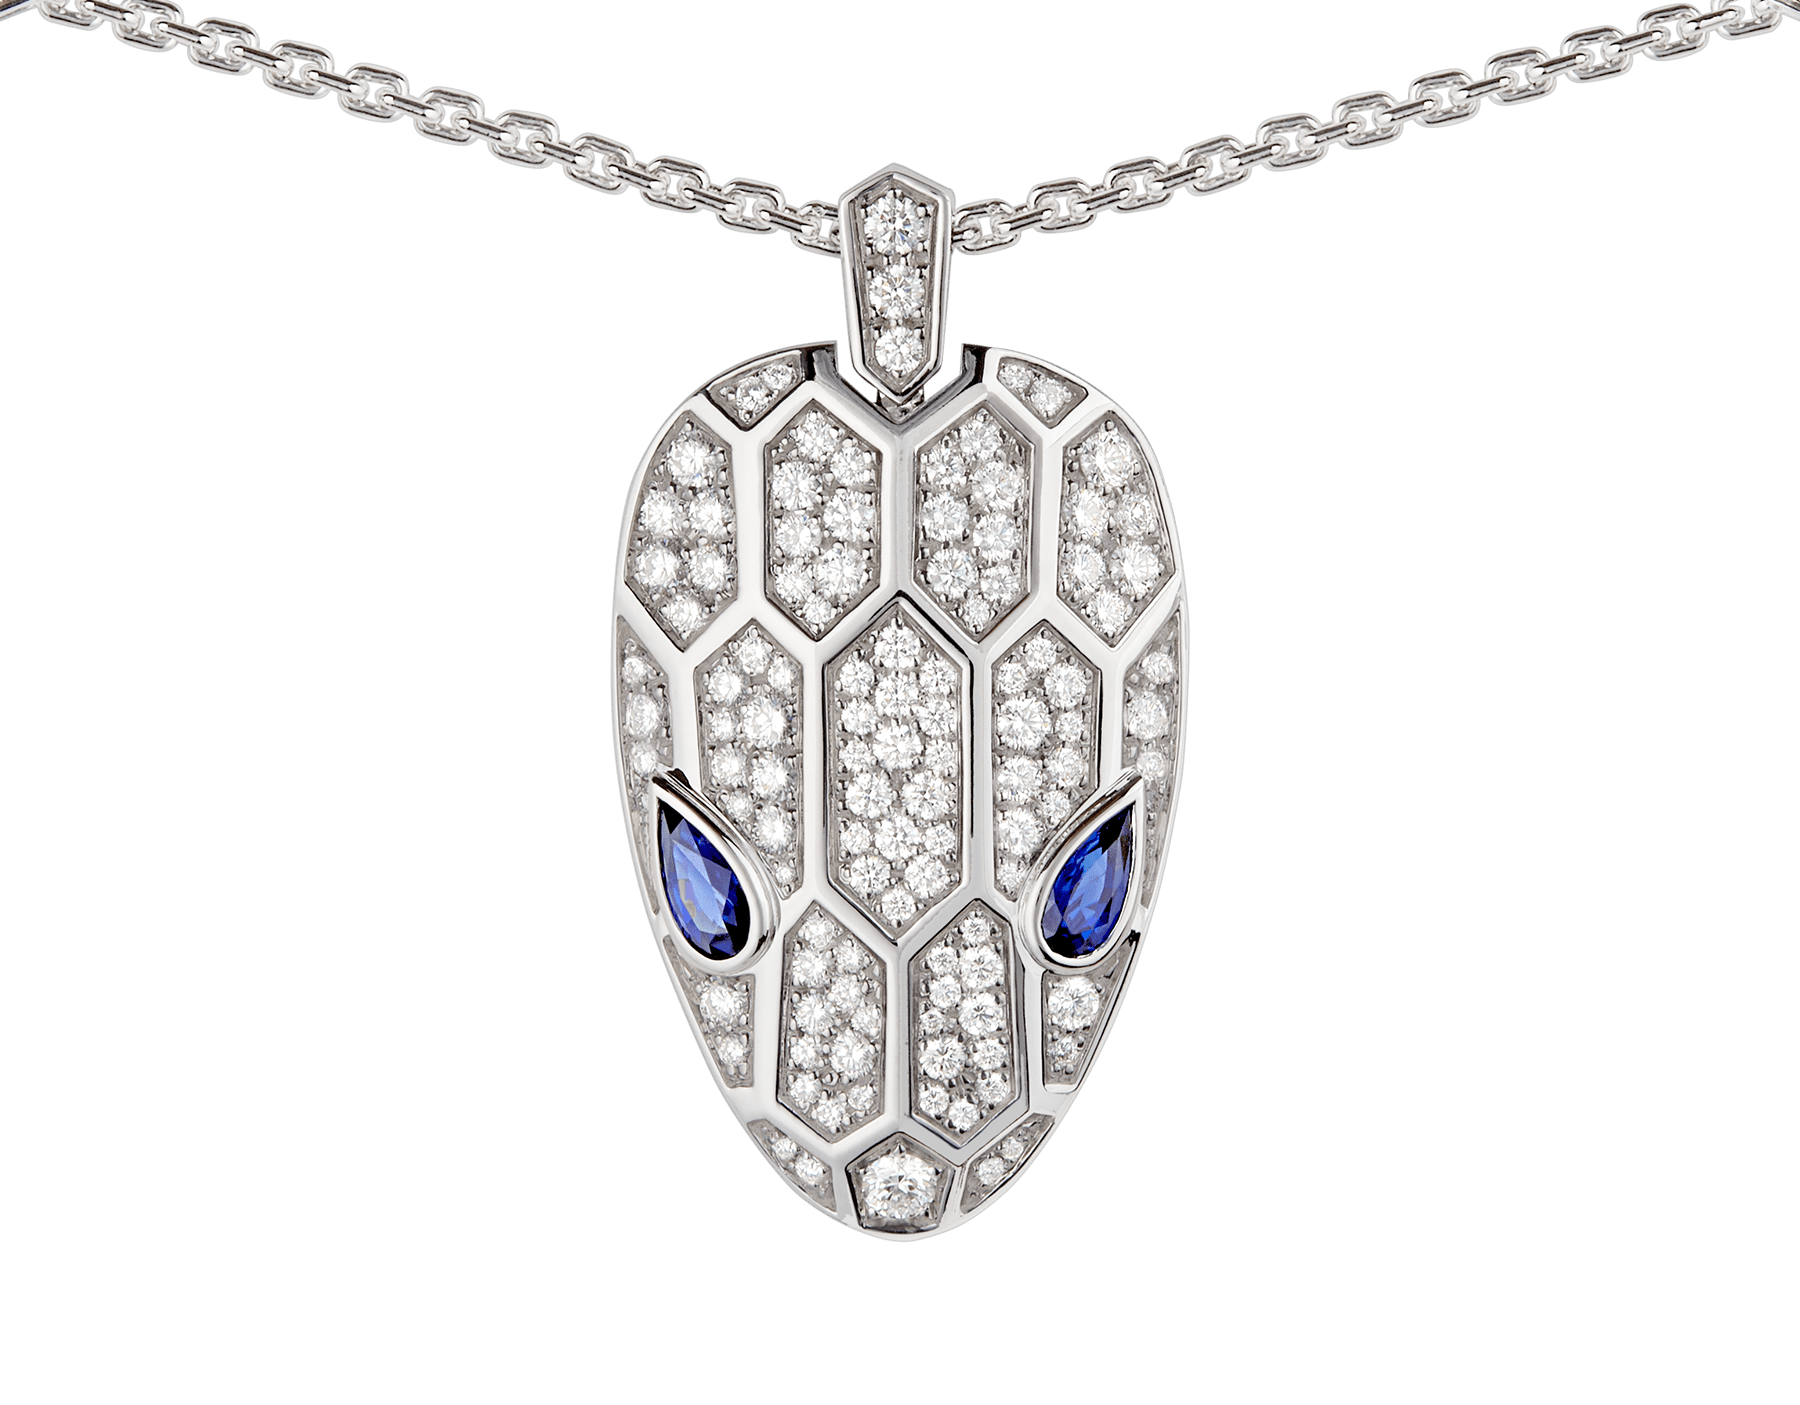 Serpenti necklace in 18 kt white gold set with blue sapphire eyes (0.78 ct) and pavé diamonds (2.16 ct) on both the chain and the pendant. 353529 image 3